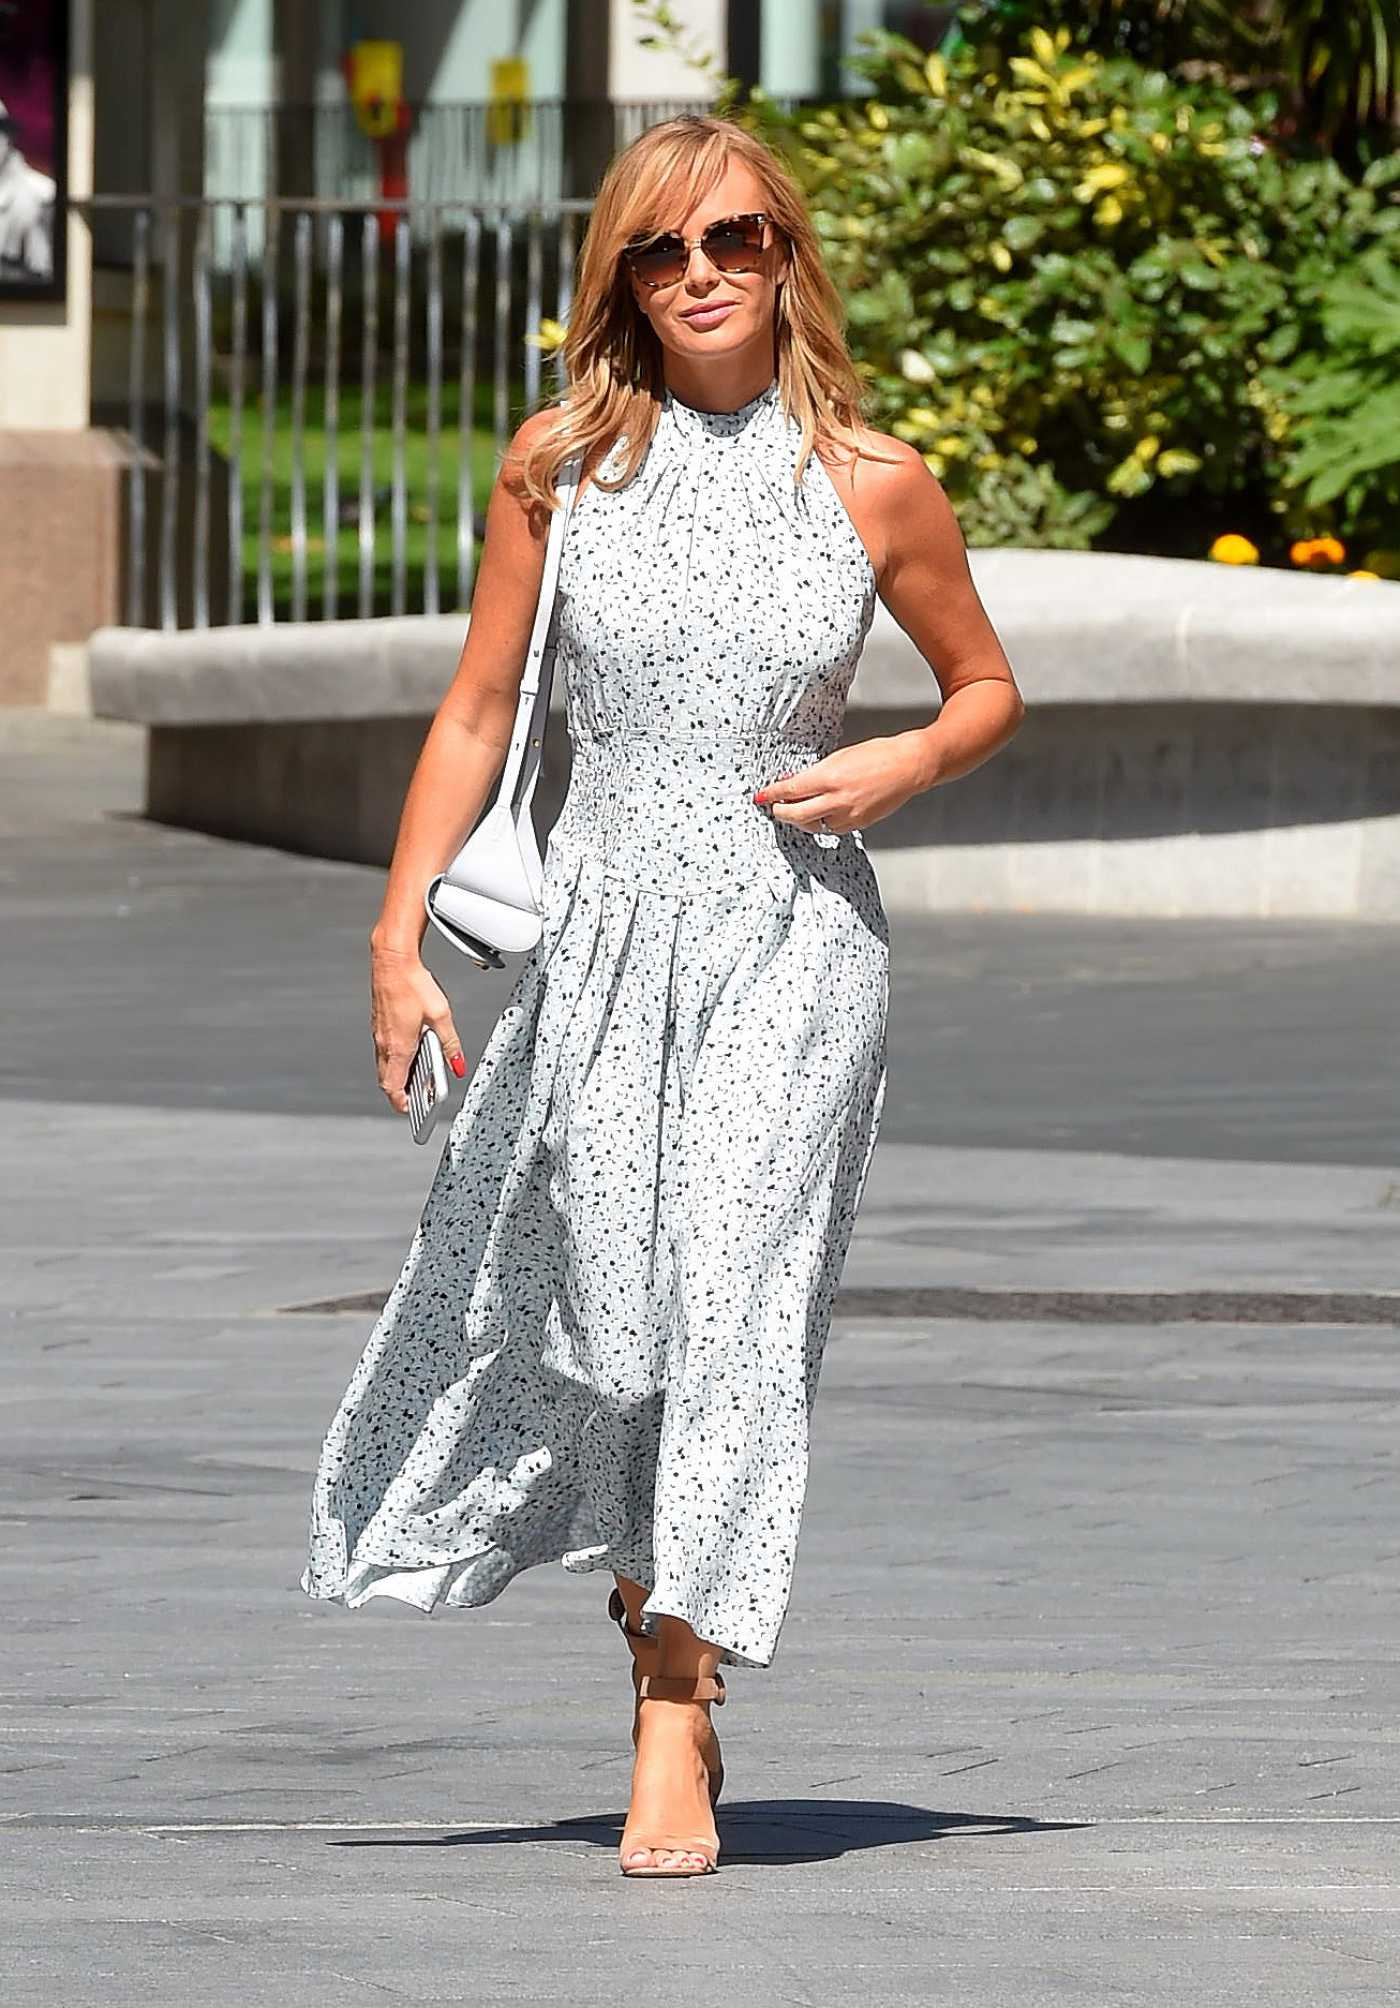 Amanda Holden in a White Dress Arrives at the Heart Radioin London 06/23/2020